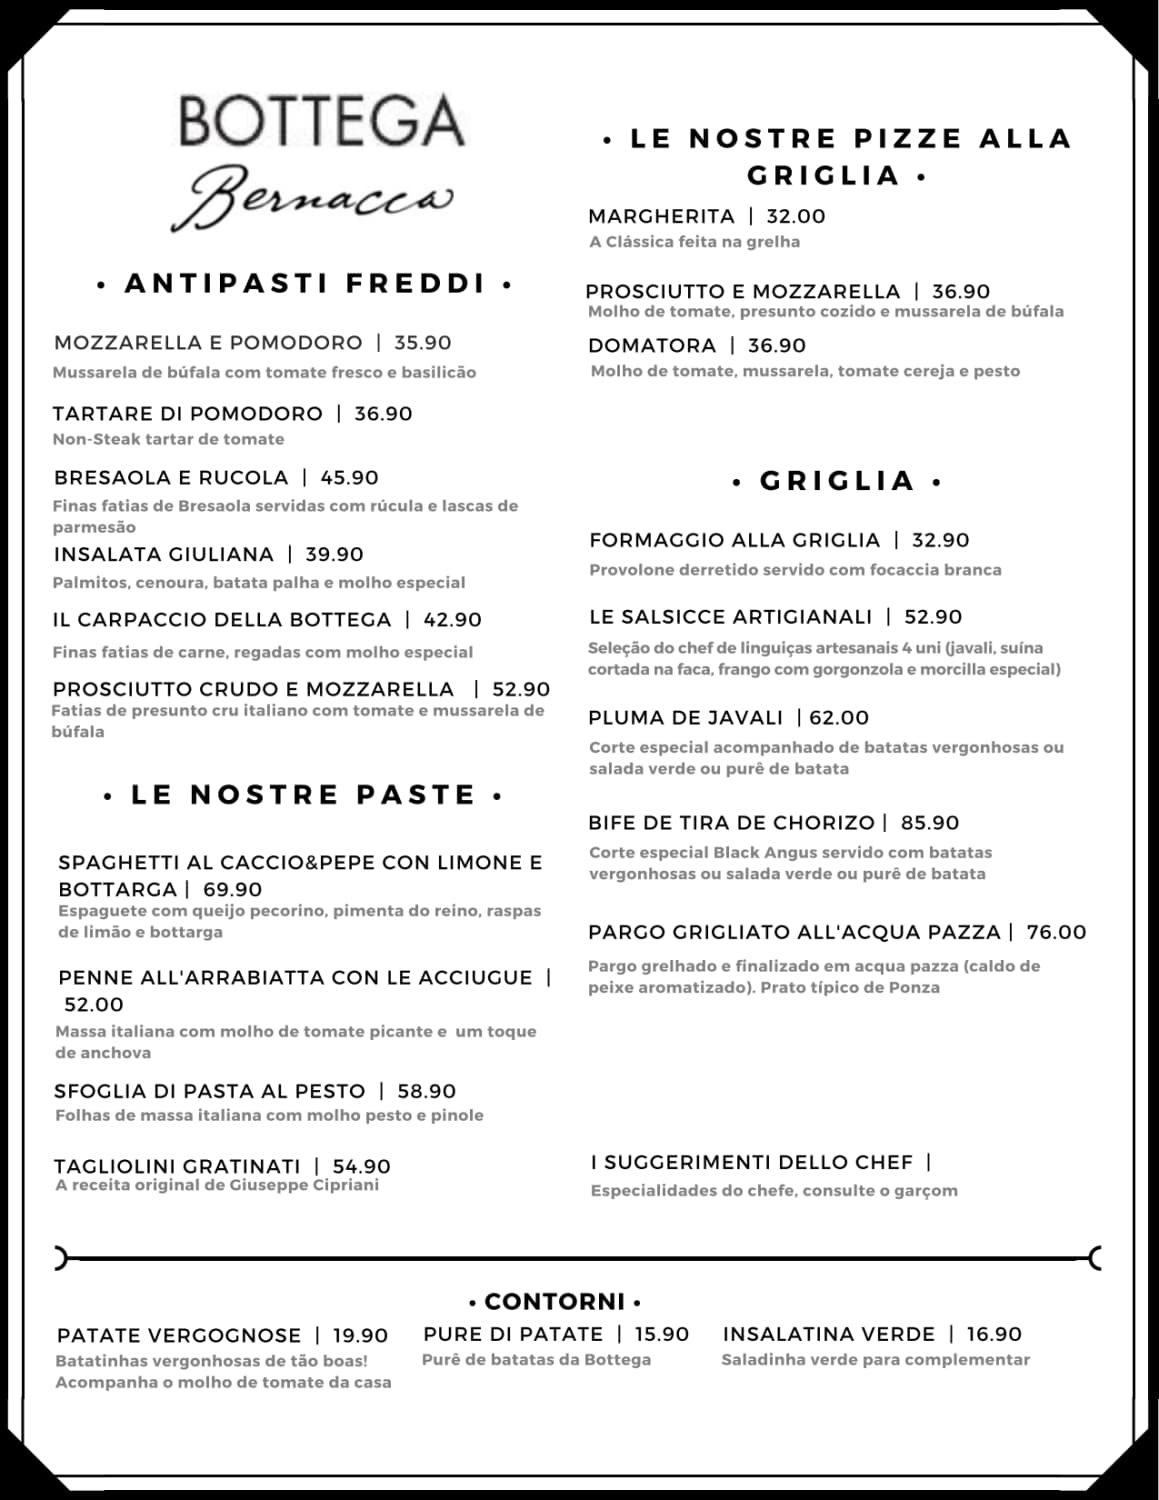 Menu do restaurante Bottega Bernacca Due - Página 1